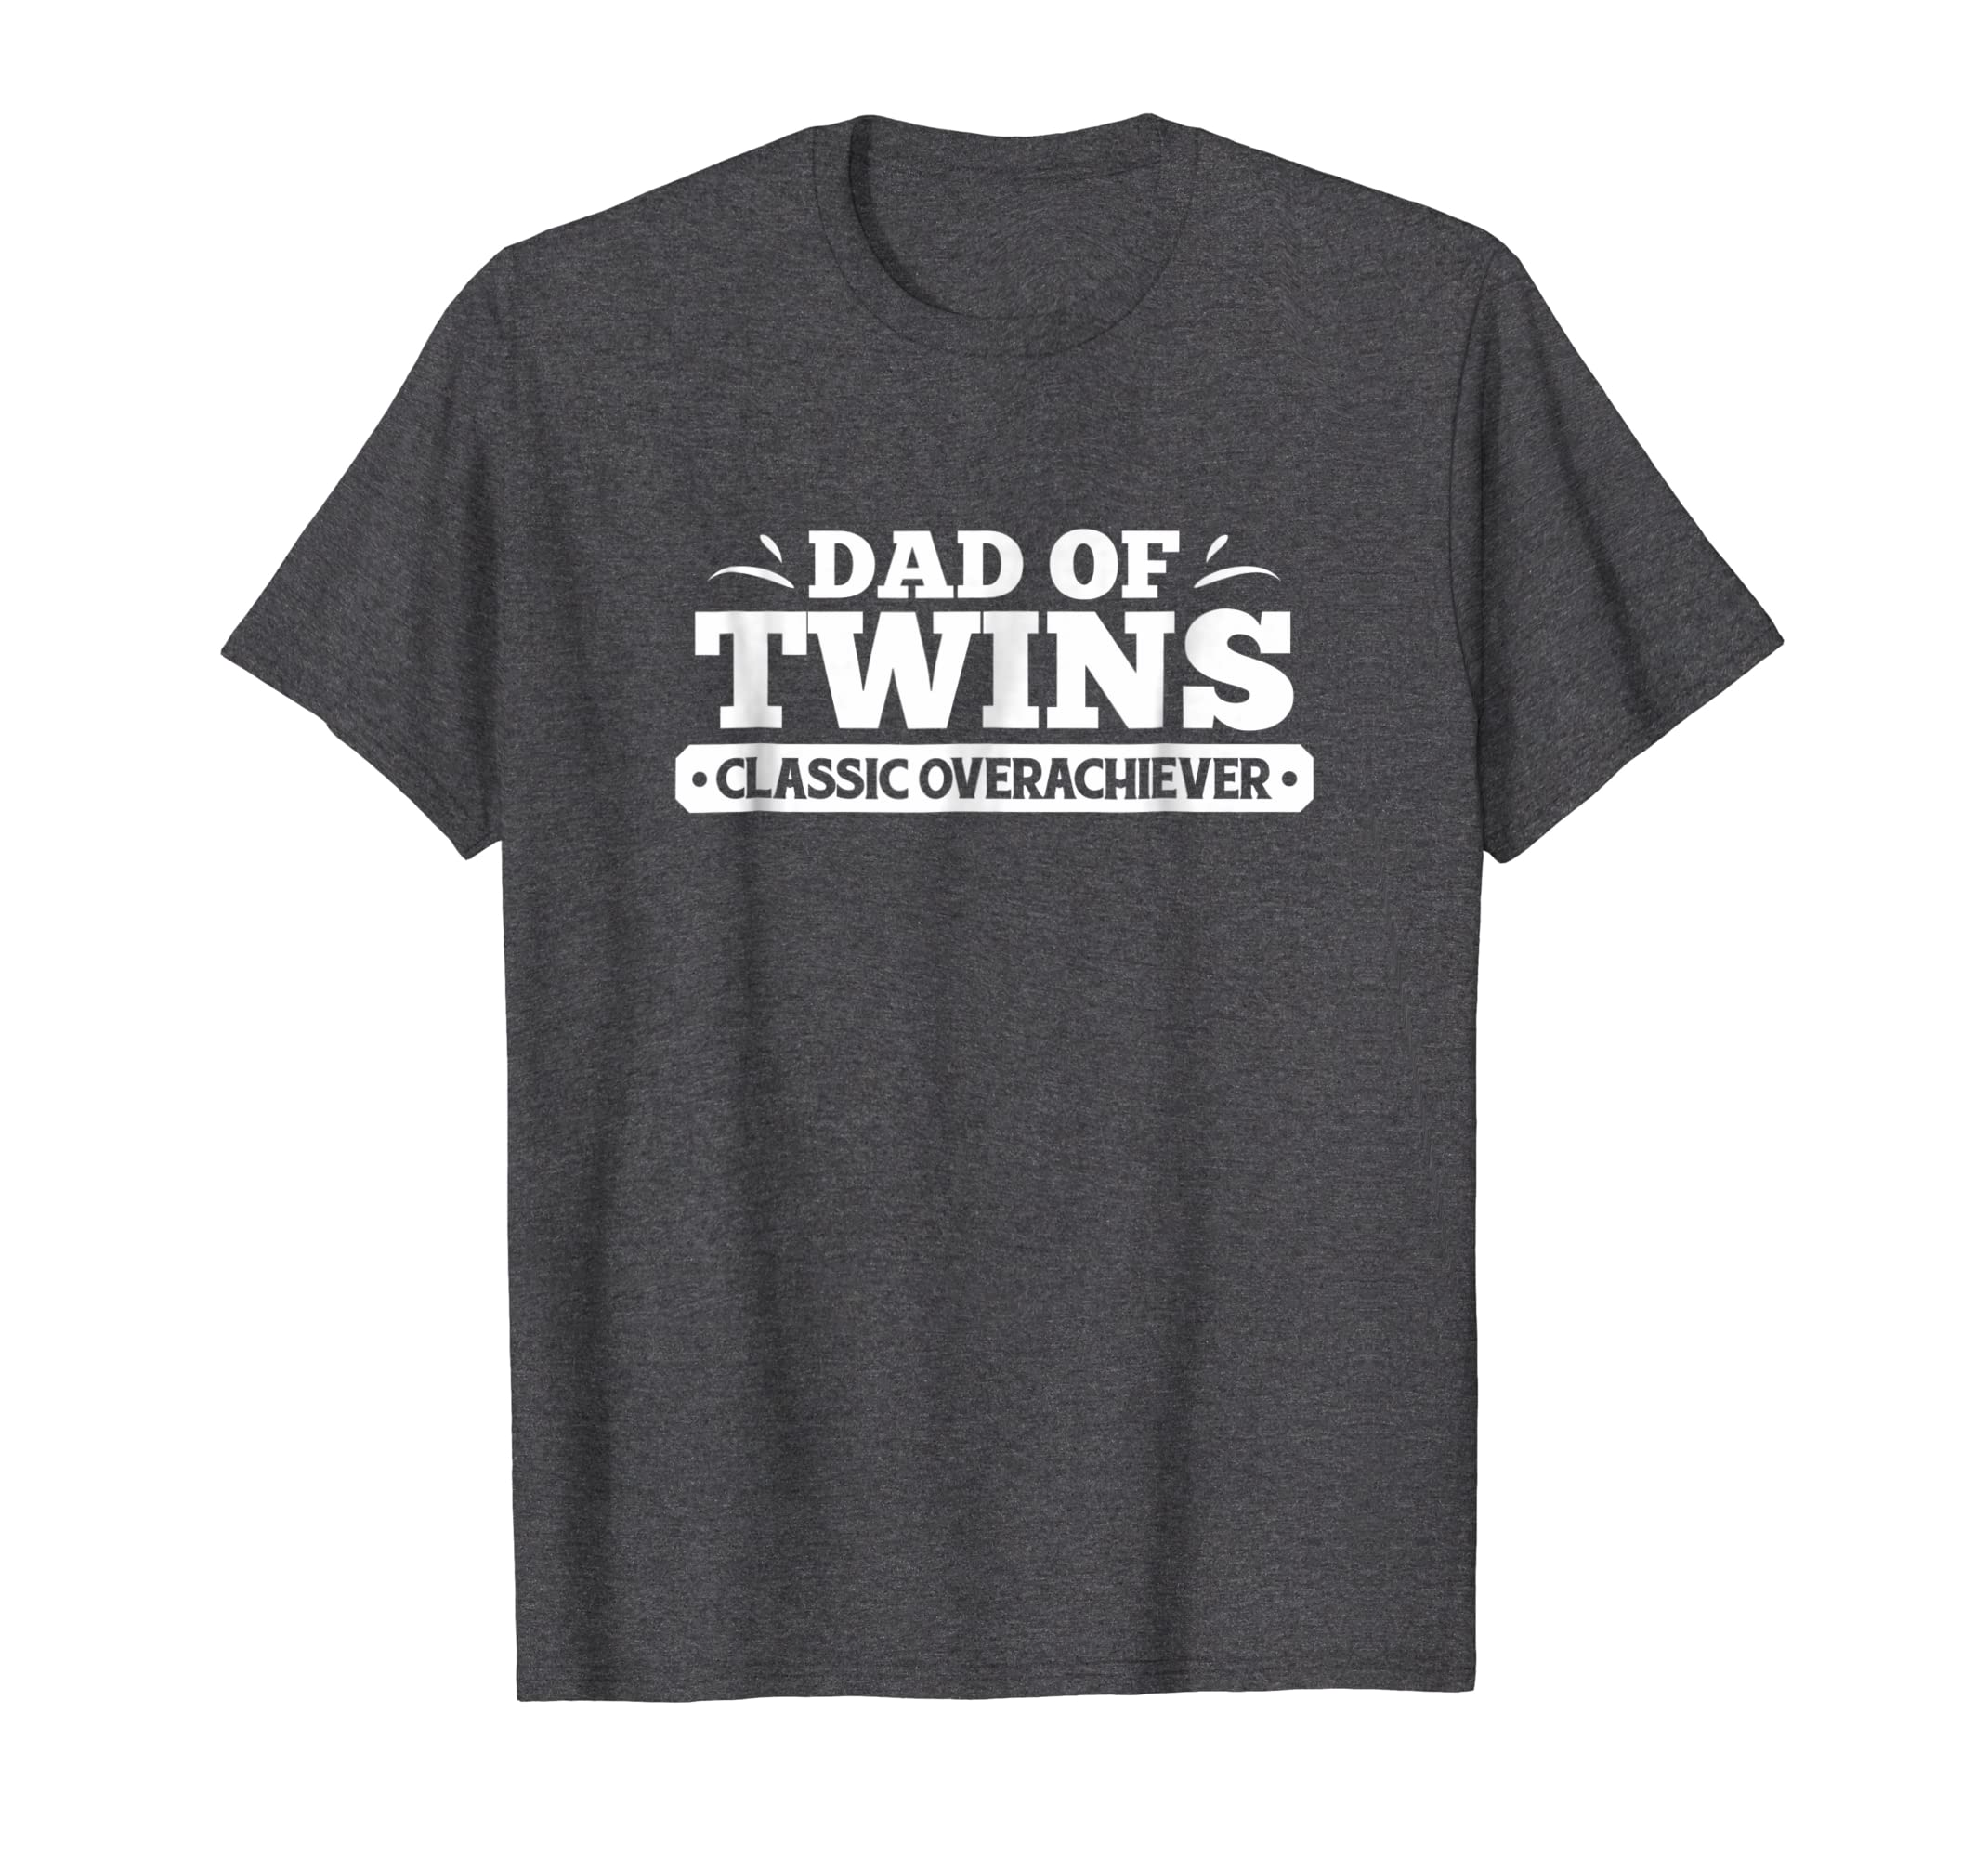 de8f49bc Amazon.com: Mens Dad Of Twins Classic Overachiever Funny Twin Father Shirt:  Clothing